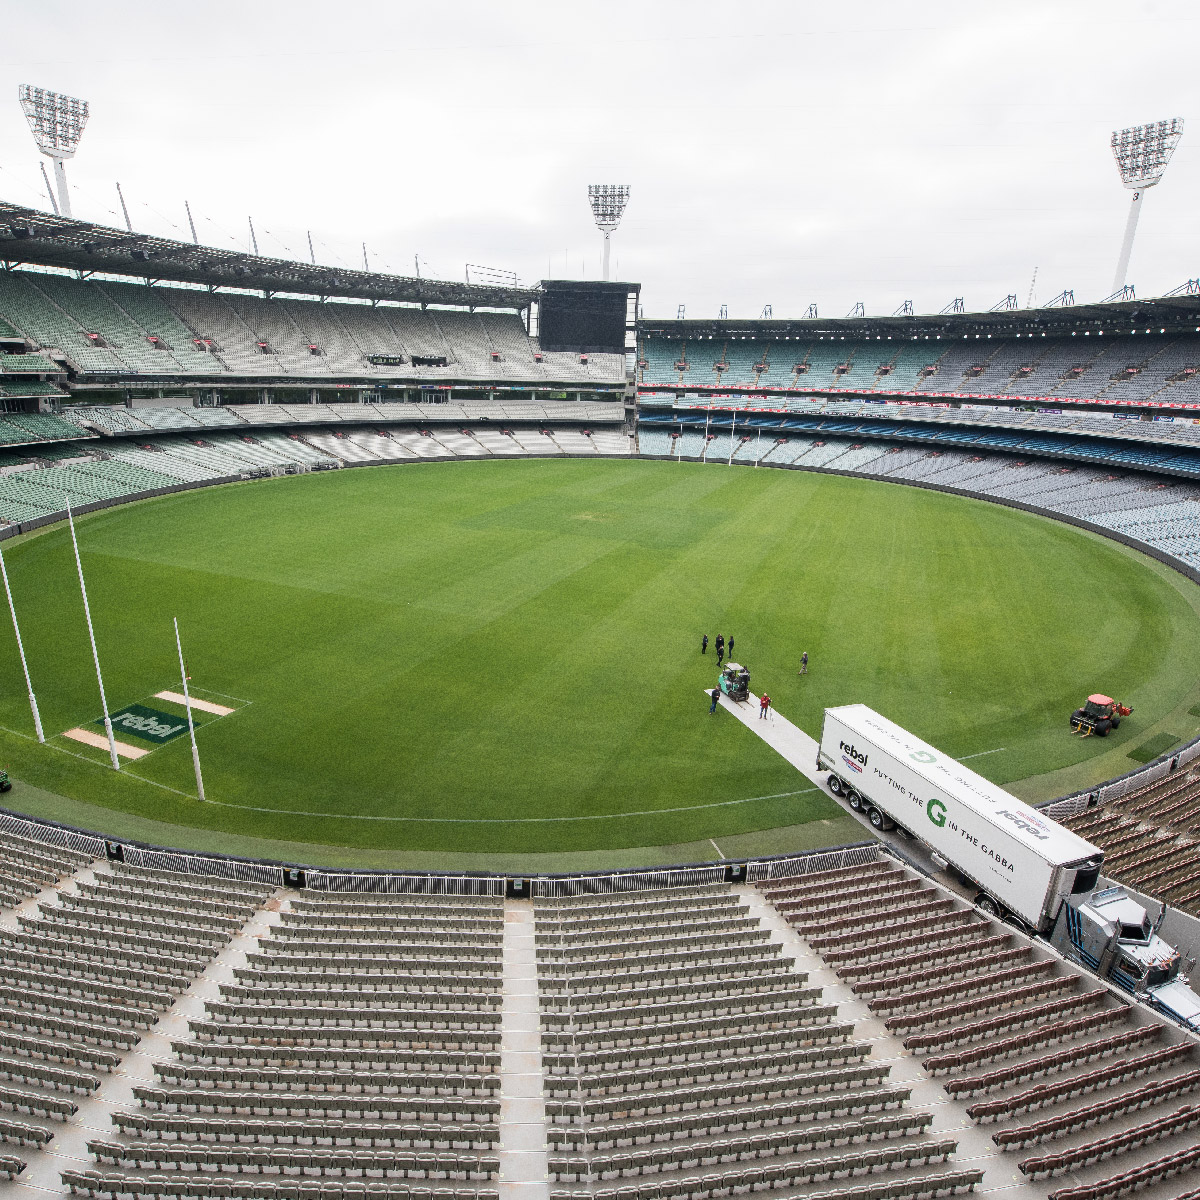 The turf being transported from the MCG